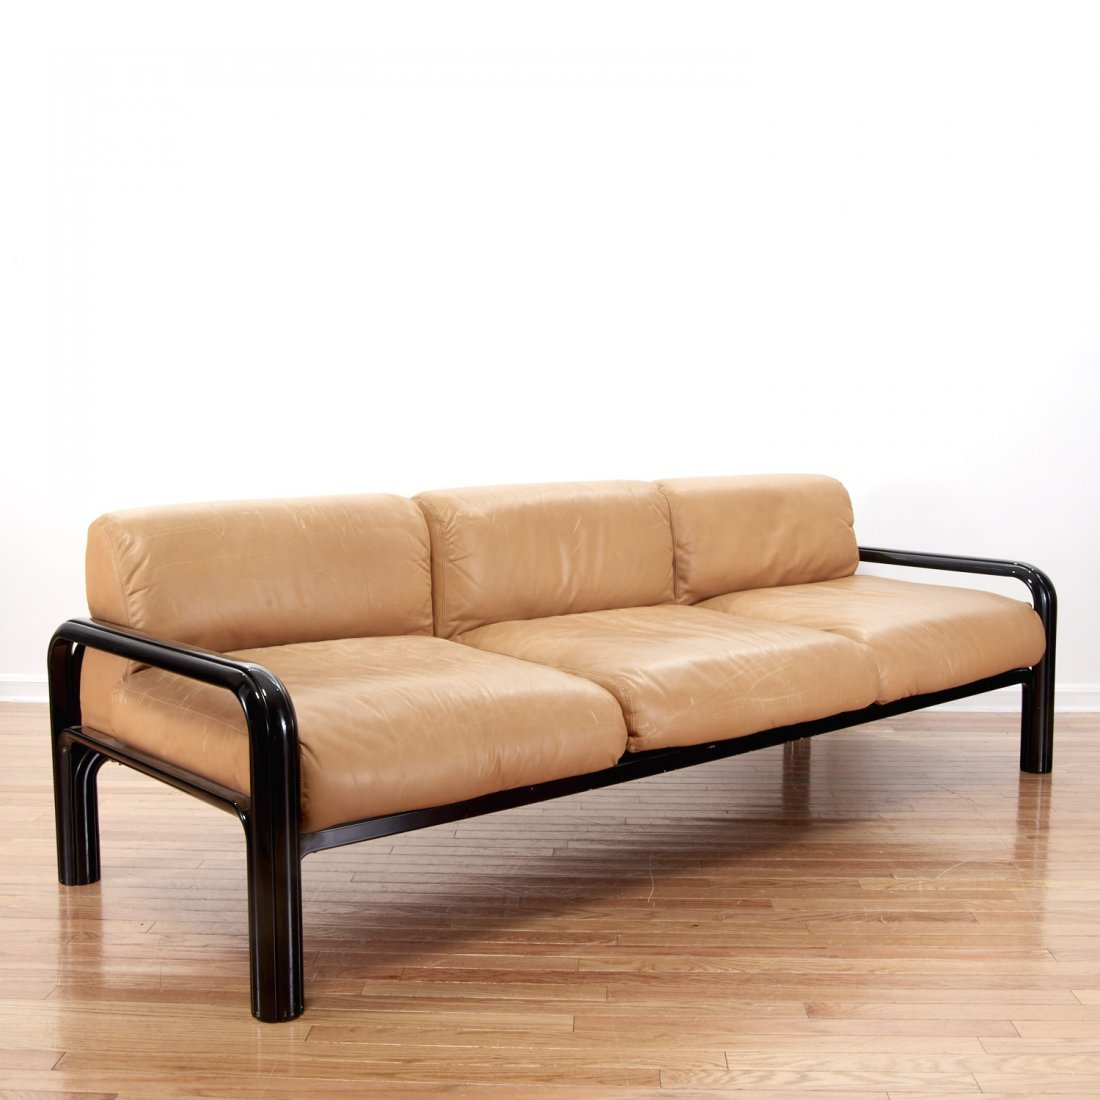 Gae Aulenti for knoll leather sofa - 2